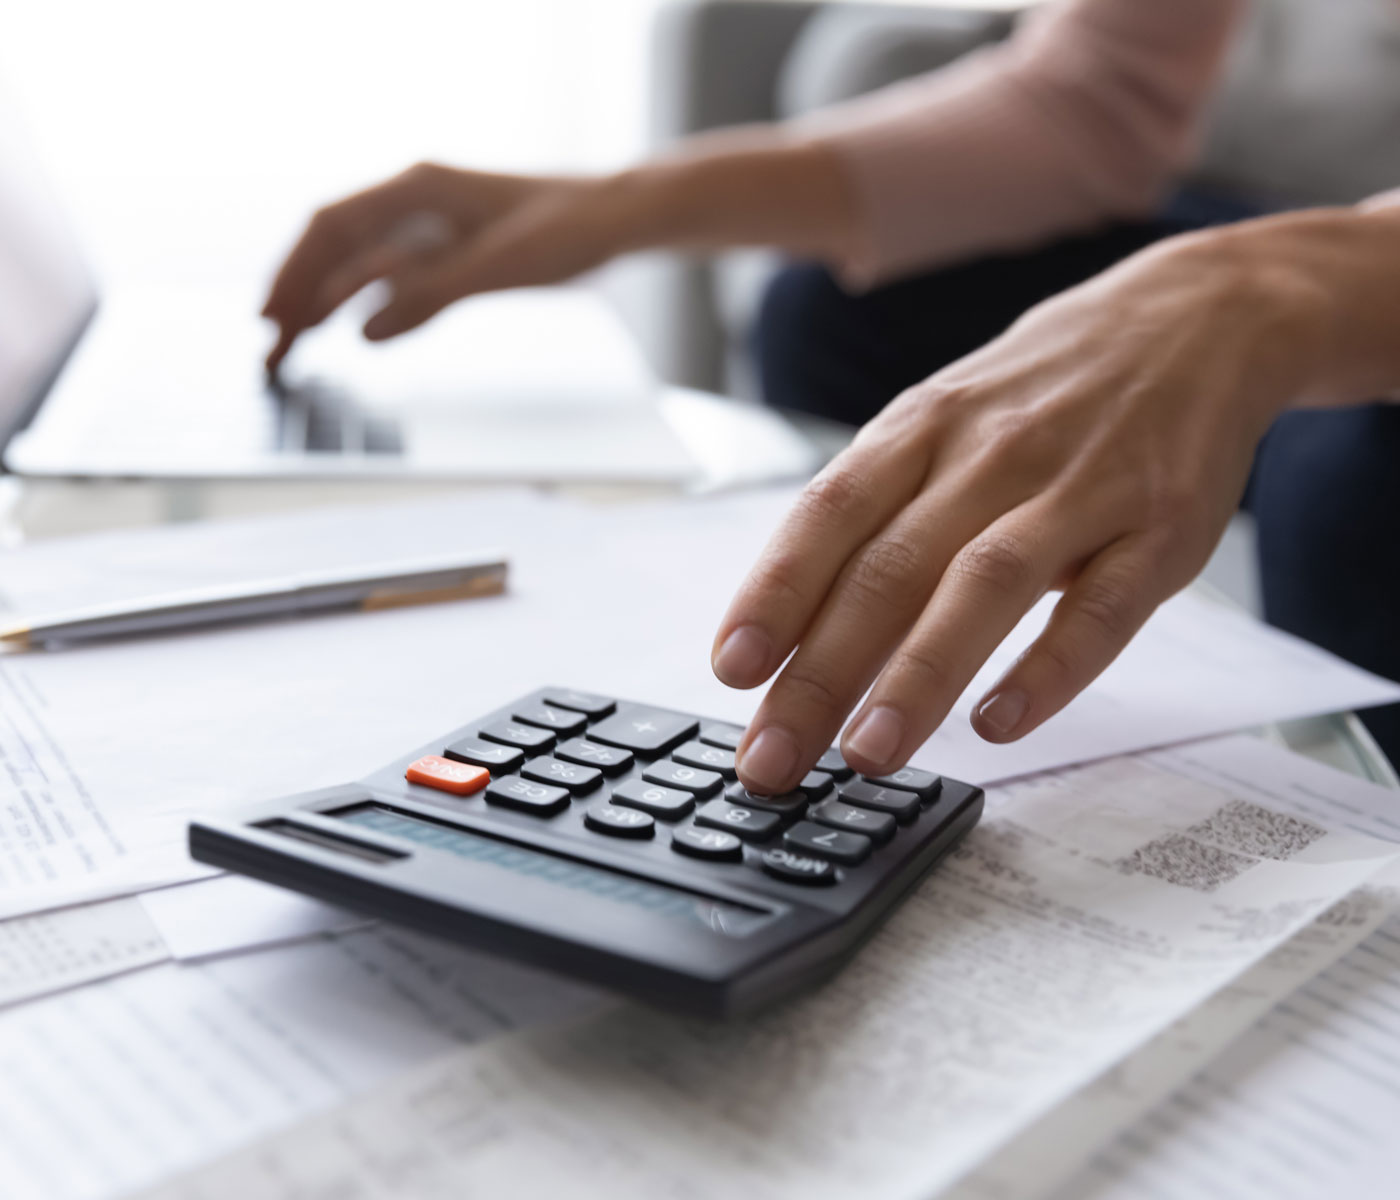 A person adding up donations on a calculator